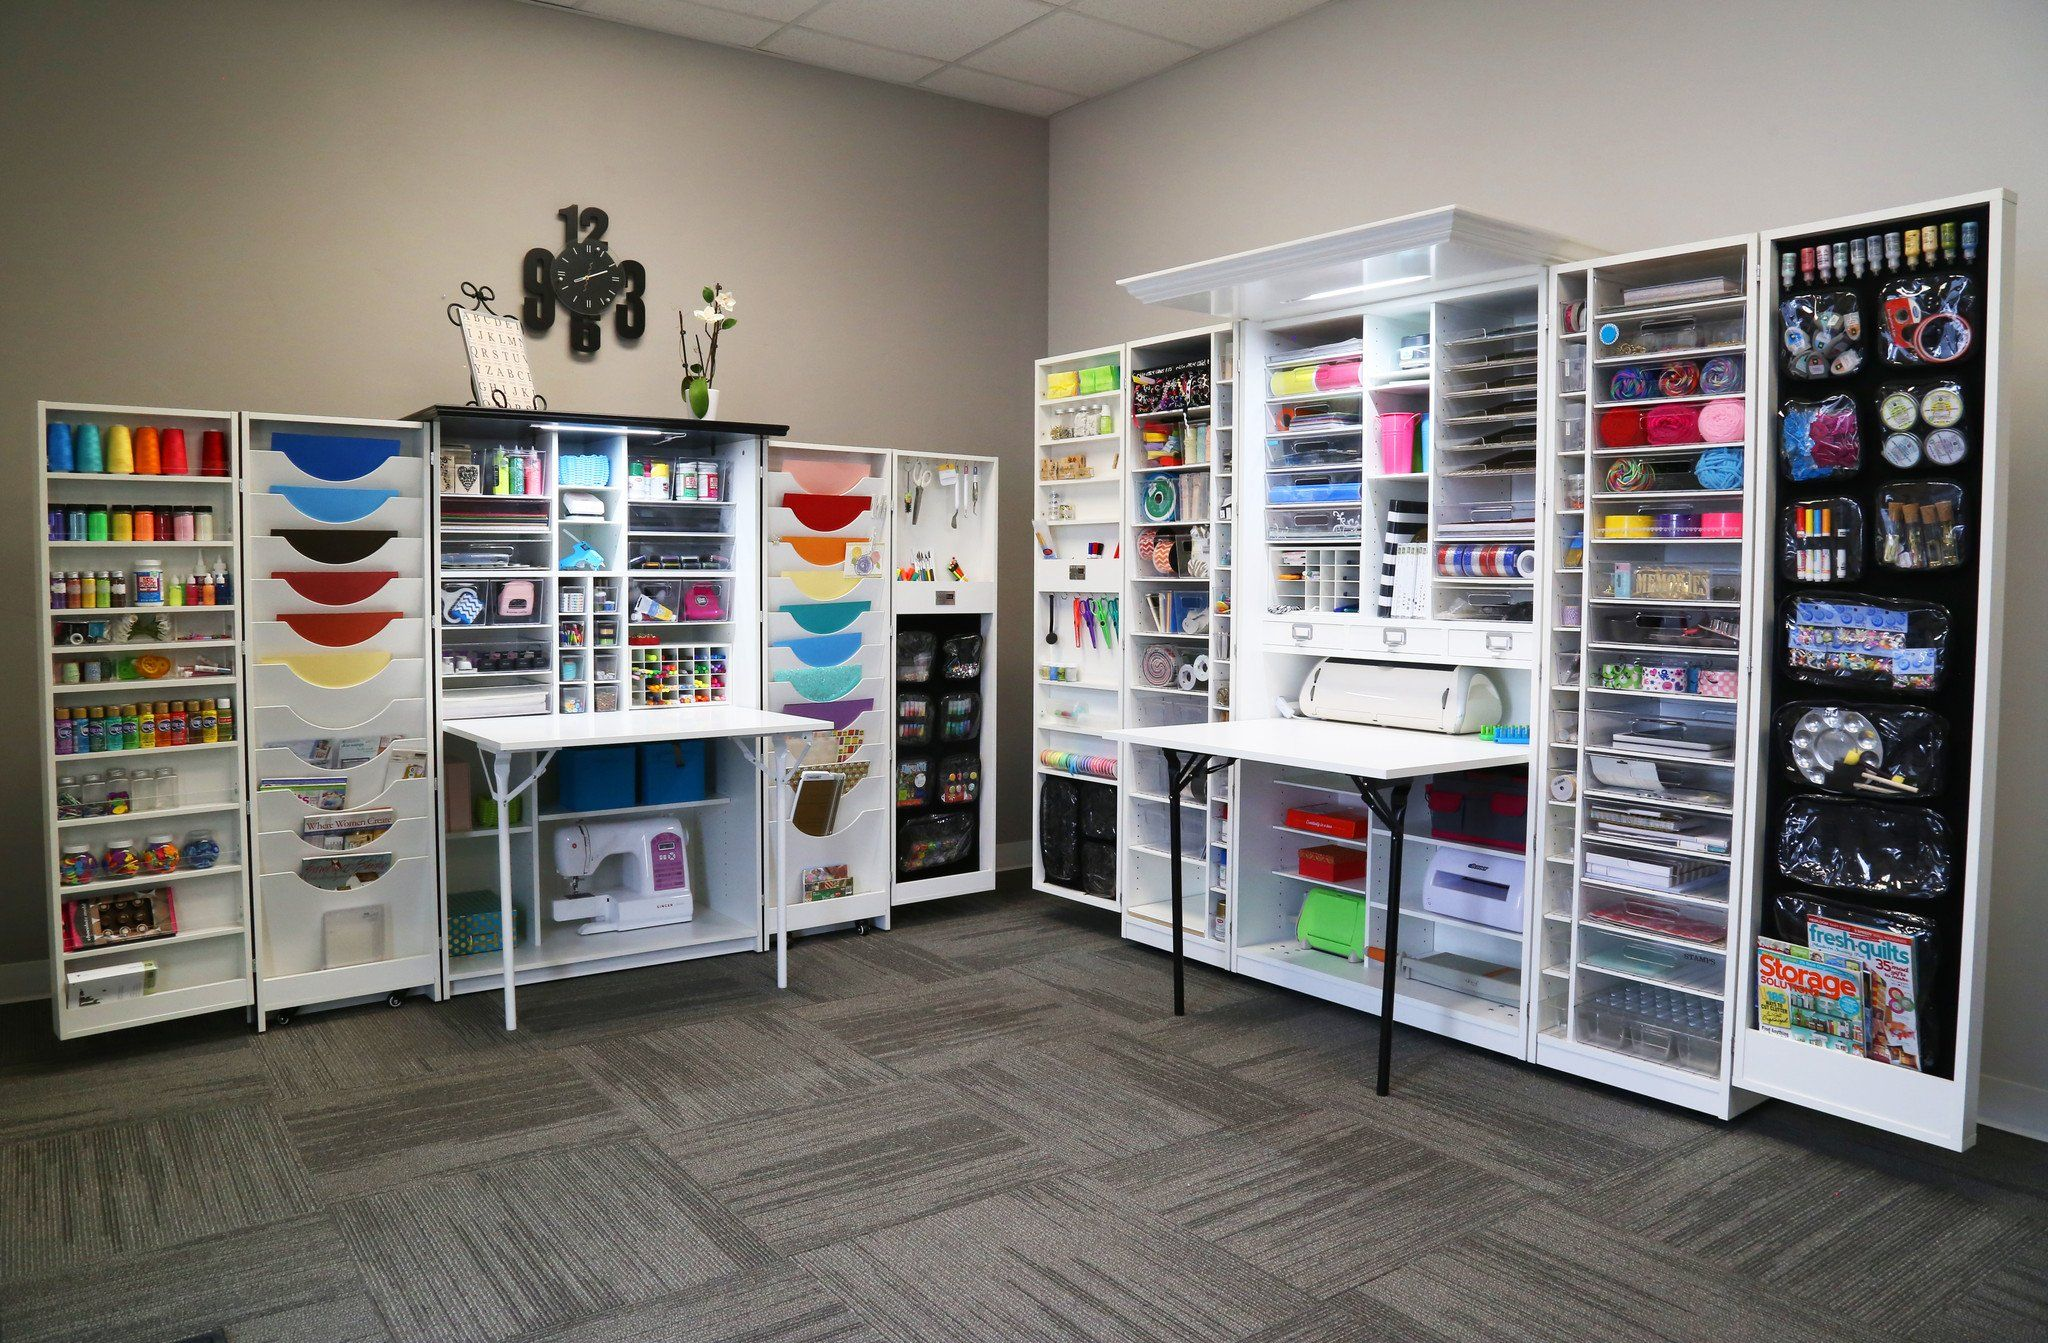 The Workbox 3 0 Vs Her Hobbybox Scrapbook Room Organization Dream Craft Room Craft Room